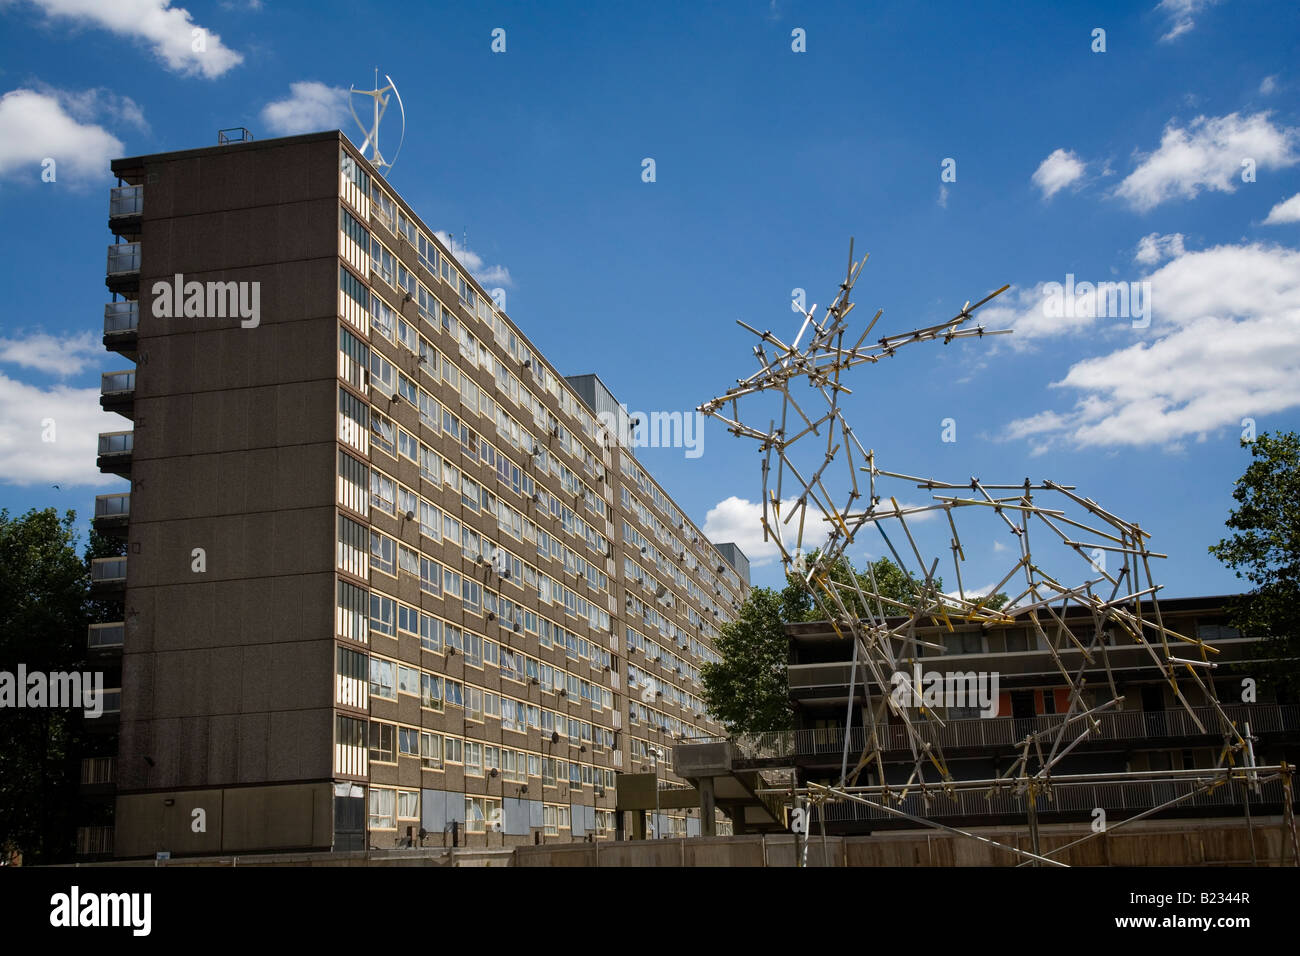 Vertical Axis Wind Turbine on top of a Council Estate in South London England Britain UK - Stock Image